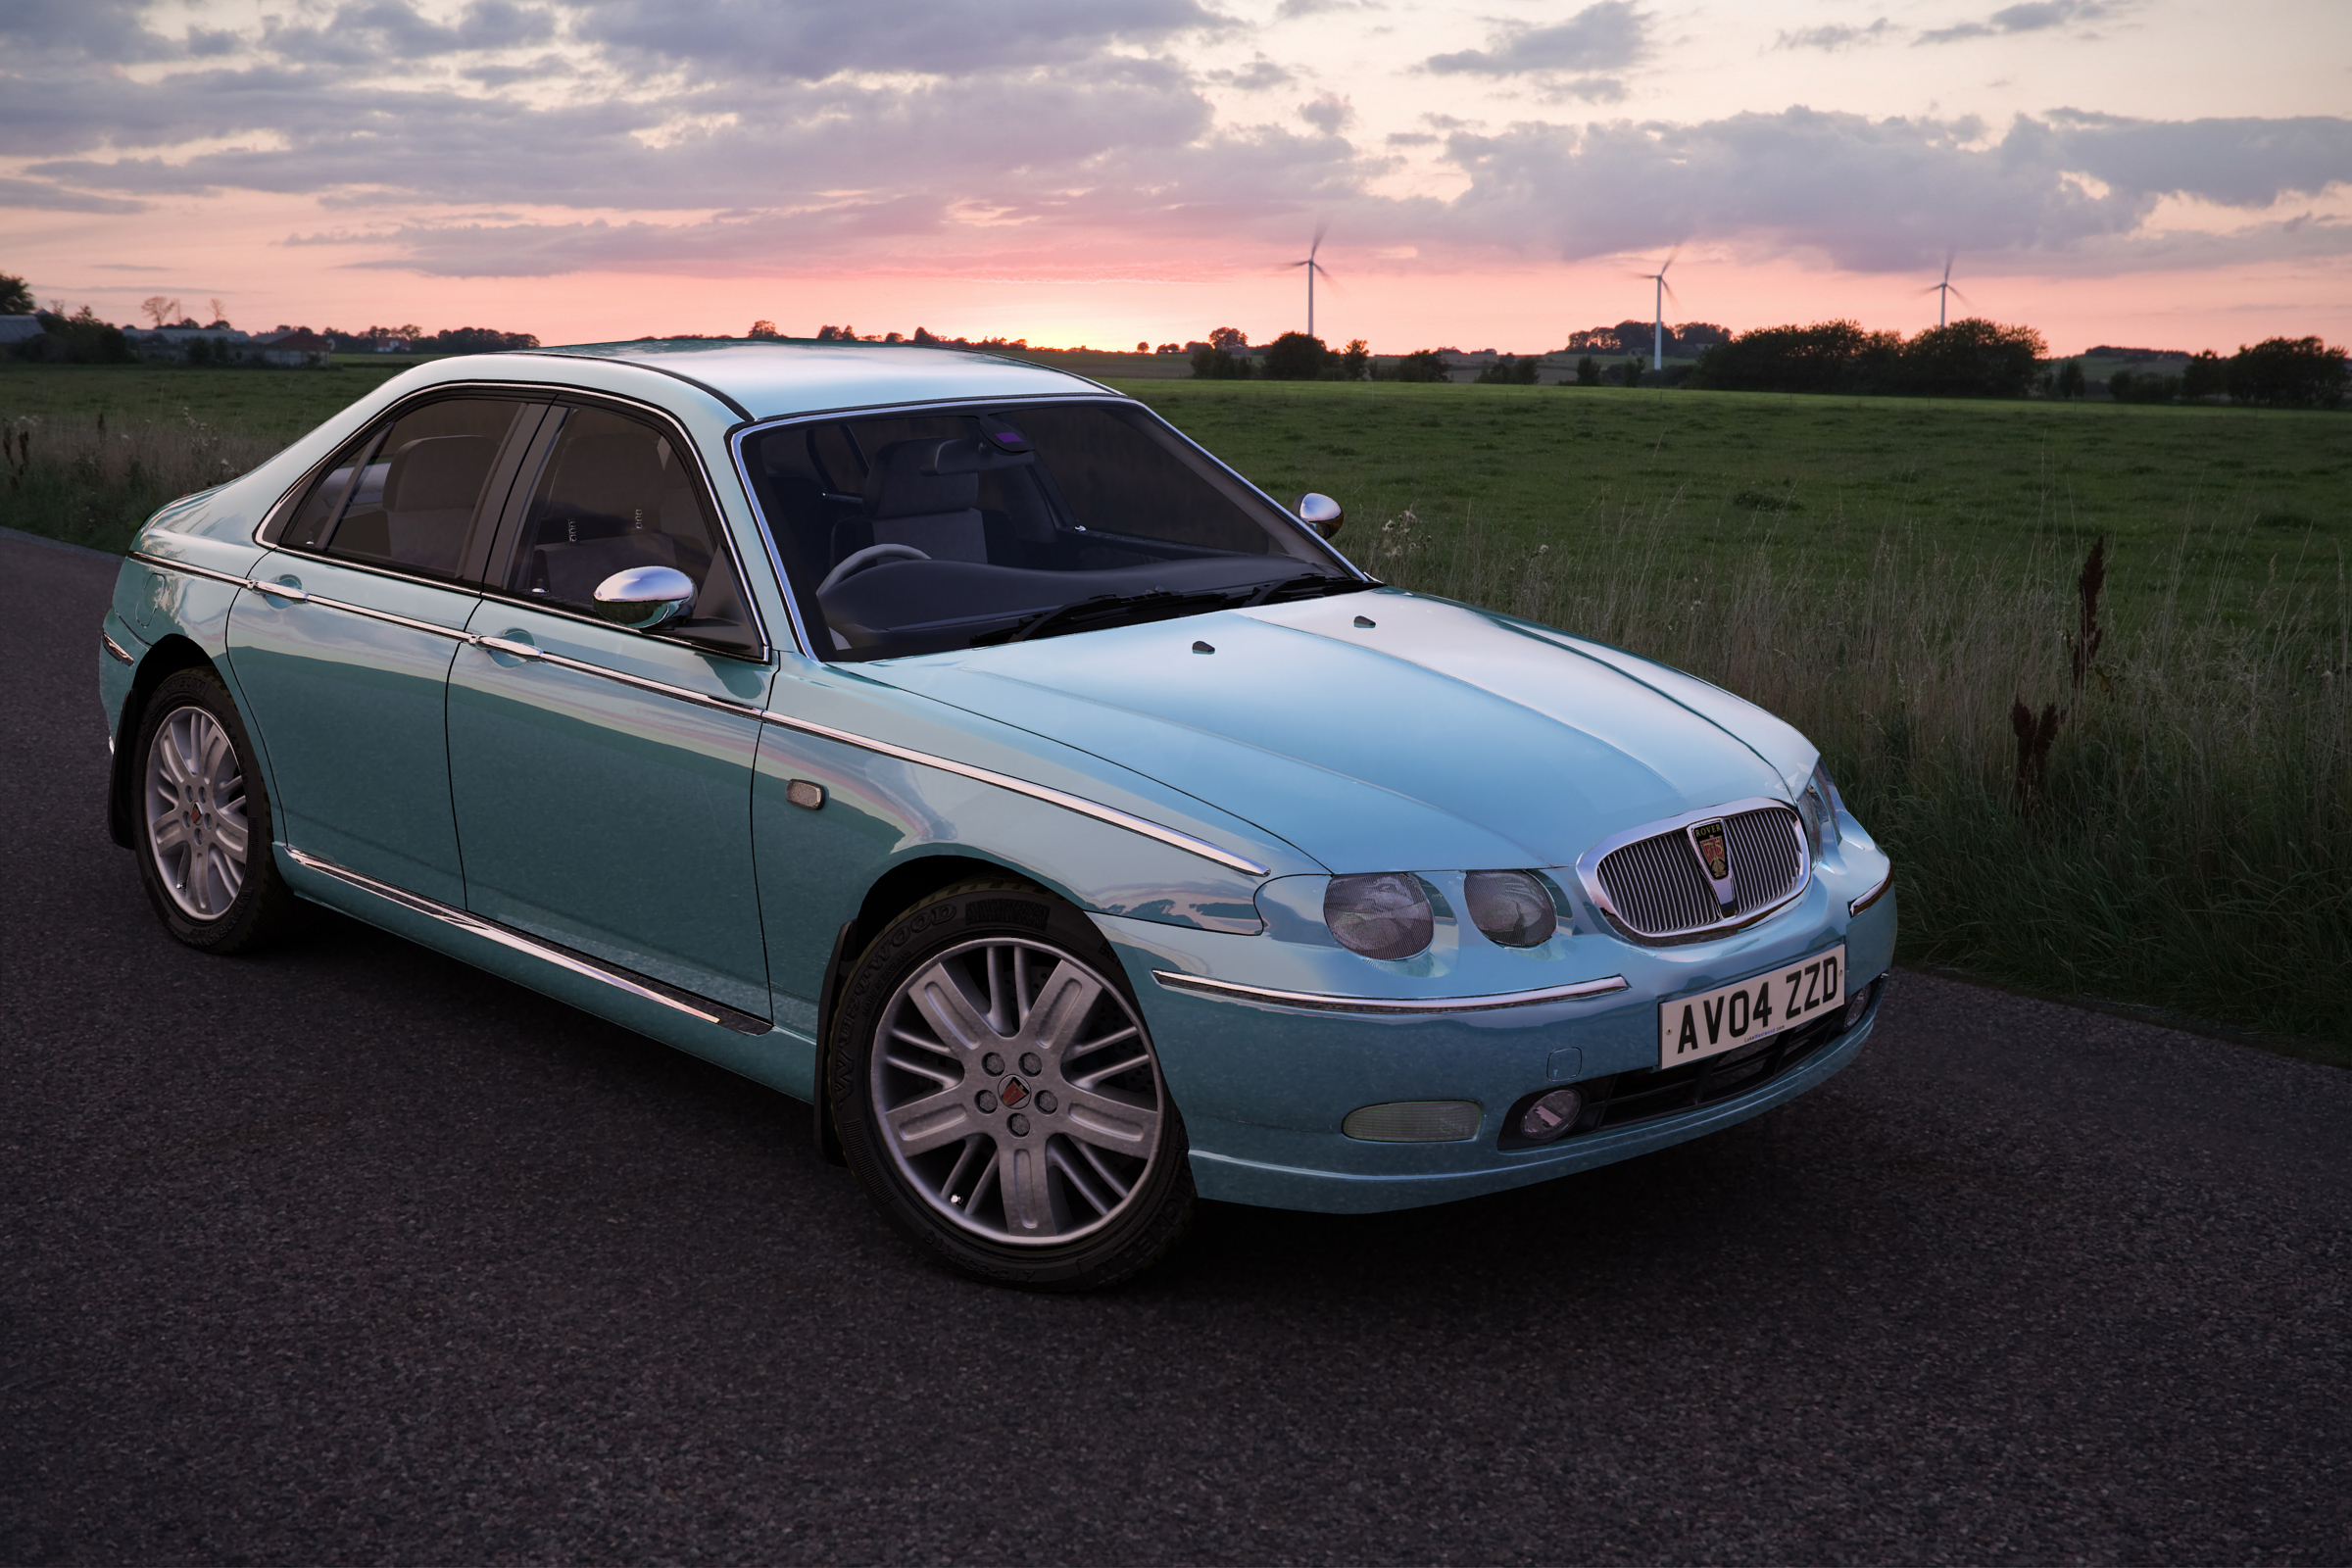 2010 rover 75 visualisation high poly by luke westwood at. Black Bedroom Furniture Sets. Home Design Ideas